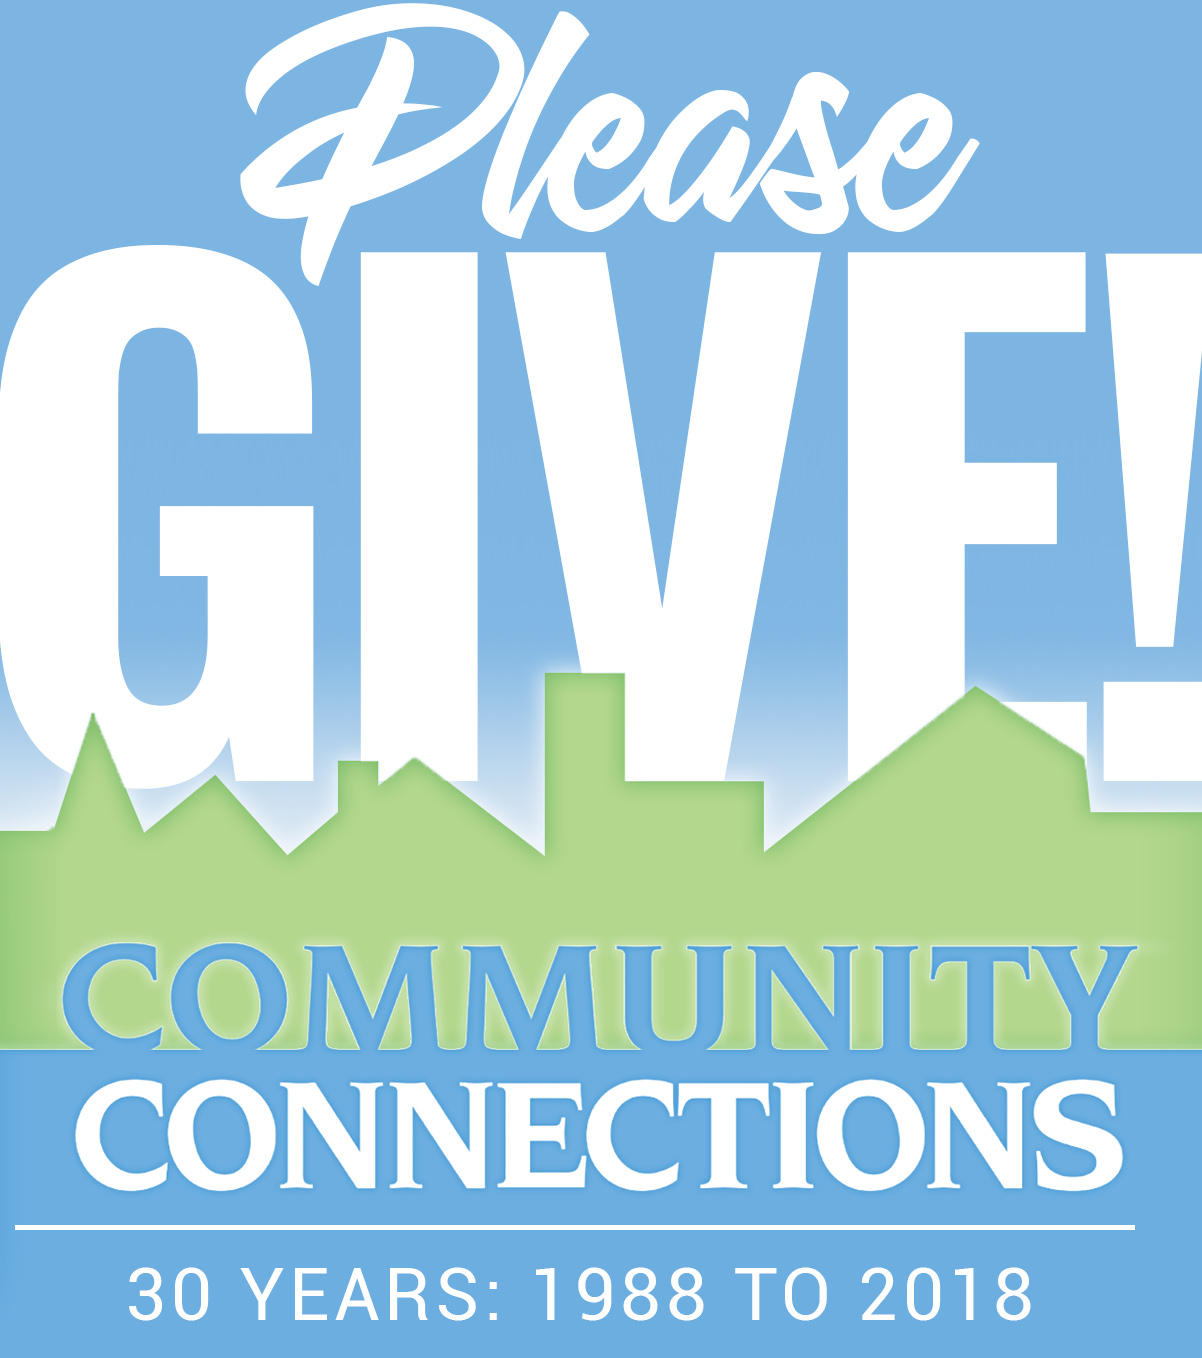 Help us celebrate 30 years of service with a gift to Community Connections! Your gift is tax-deductible and will help fund our mission and programs.